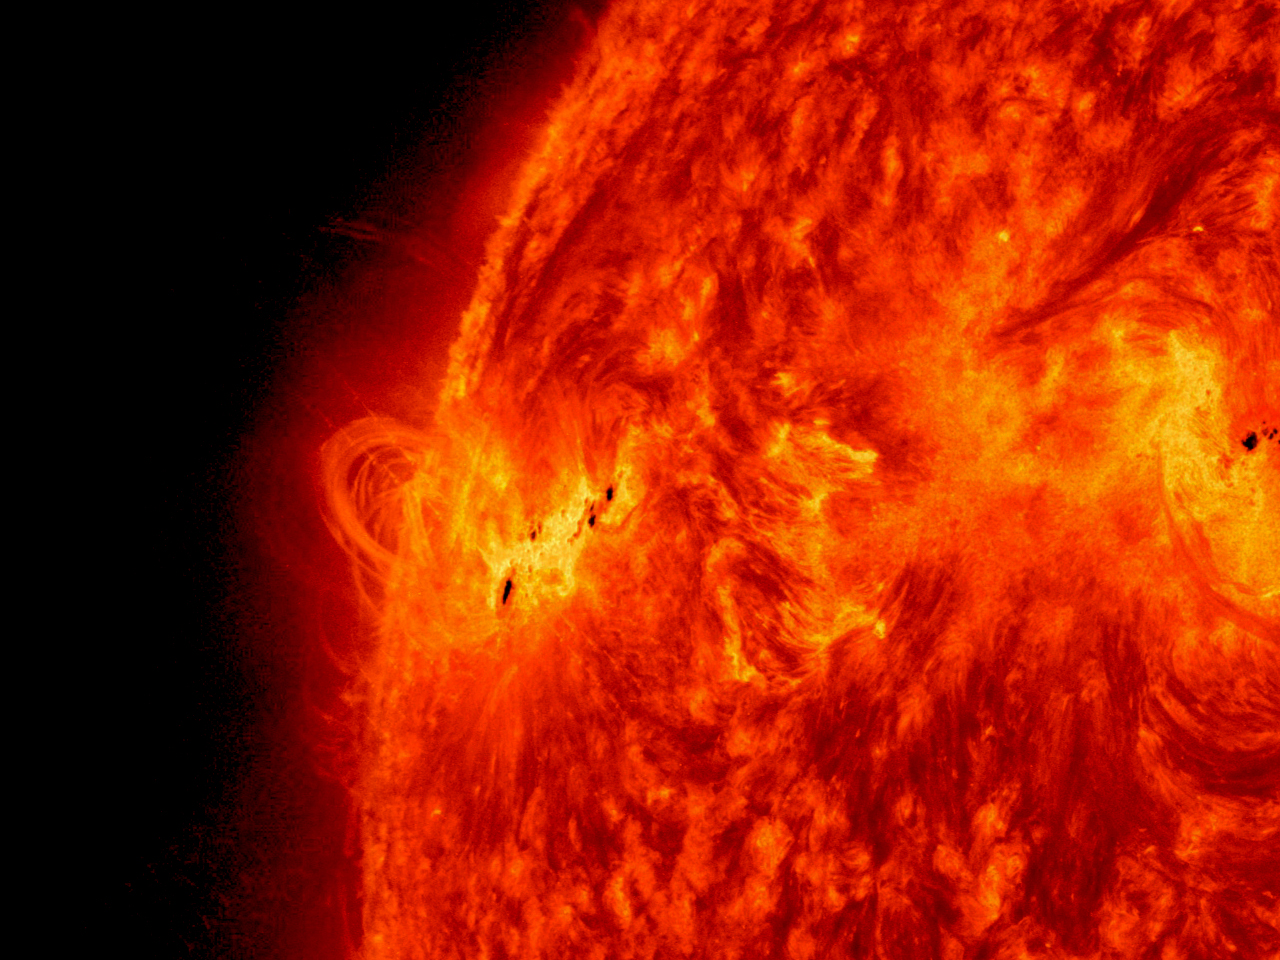 Activity continues on the Sun